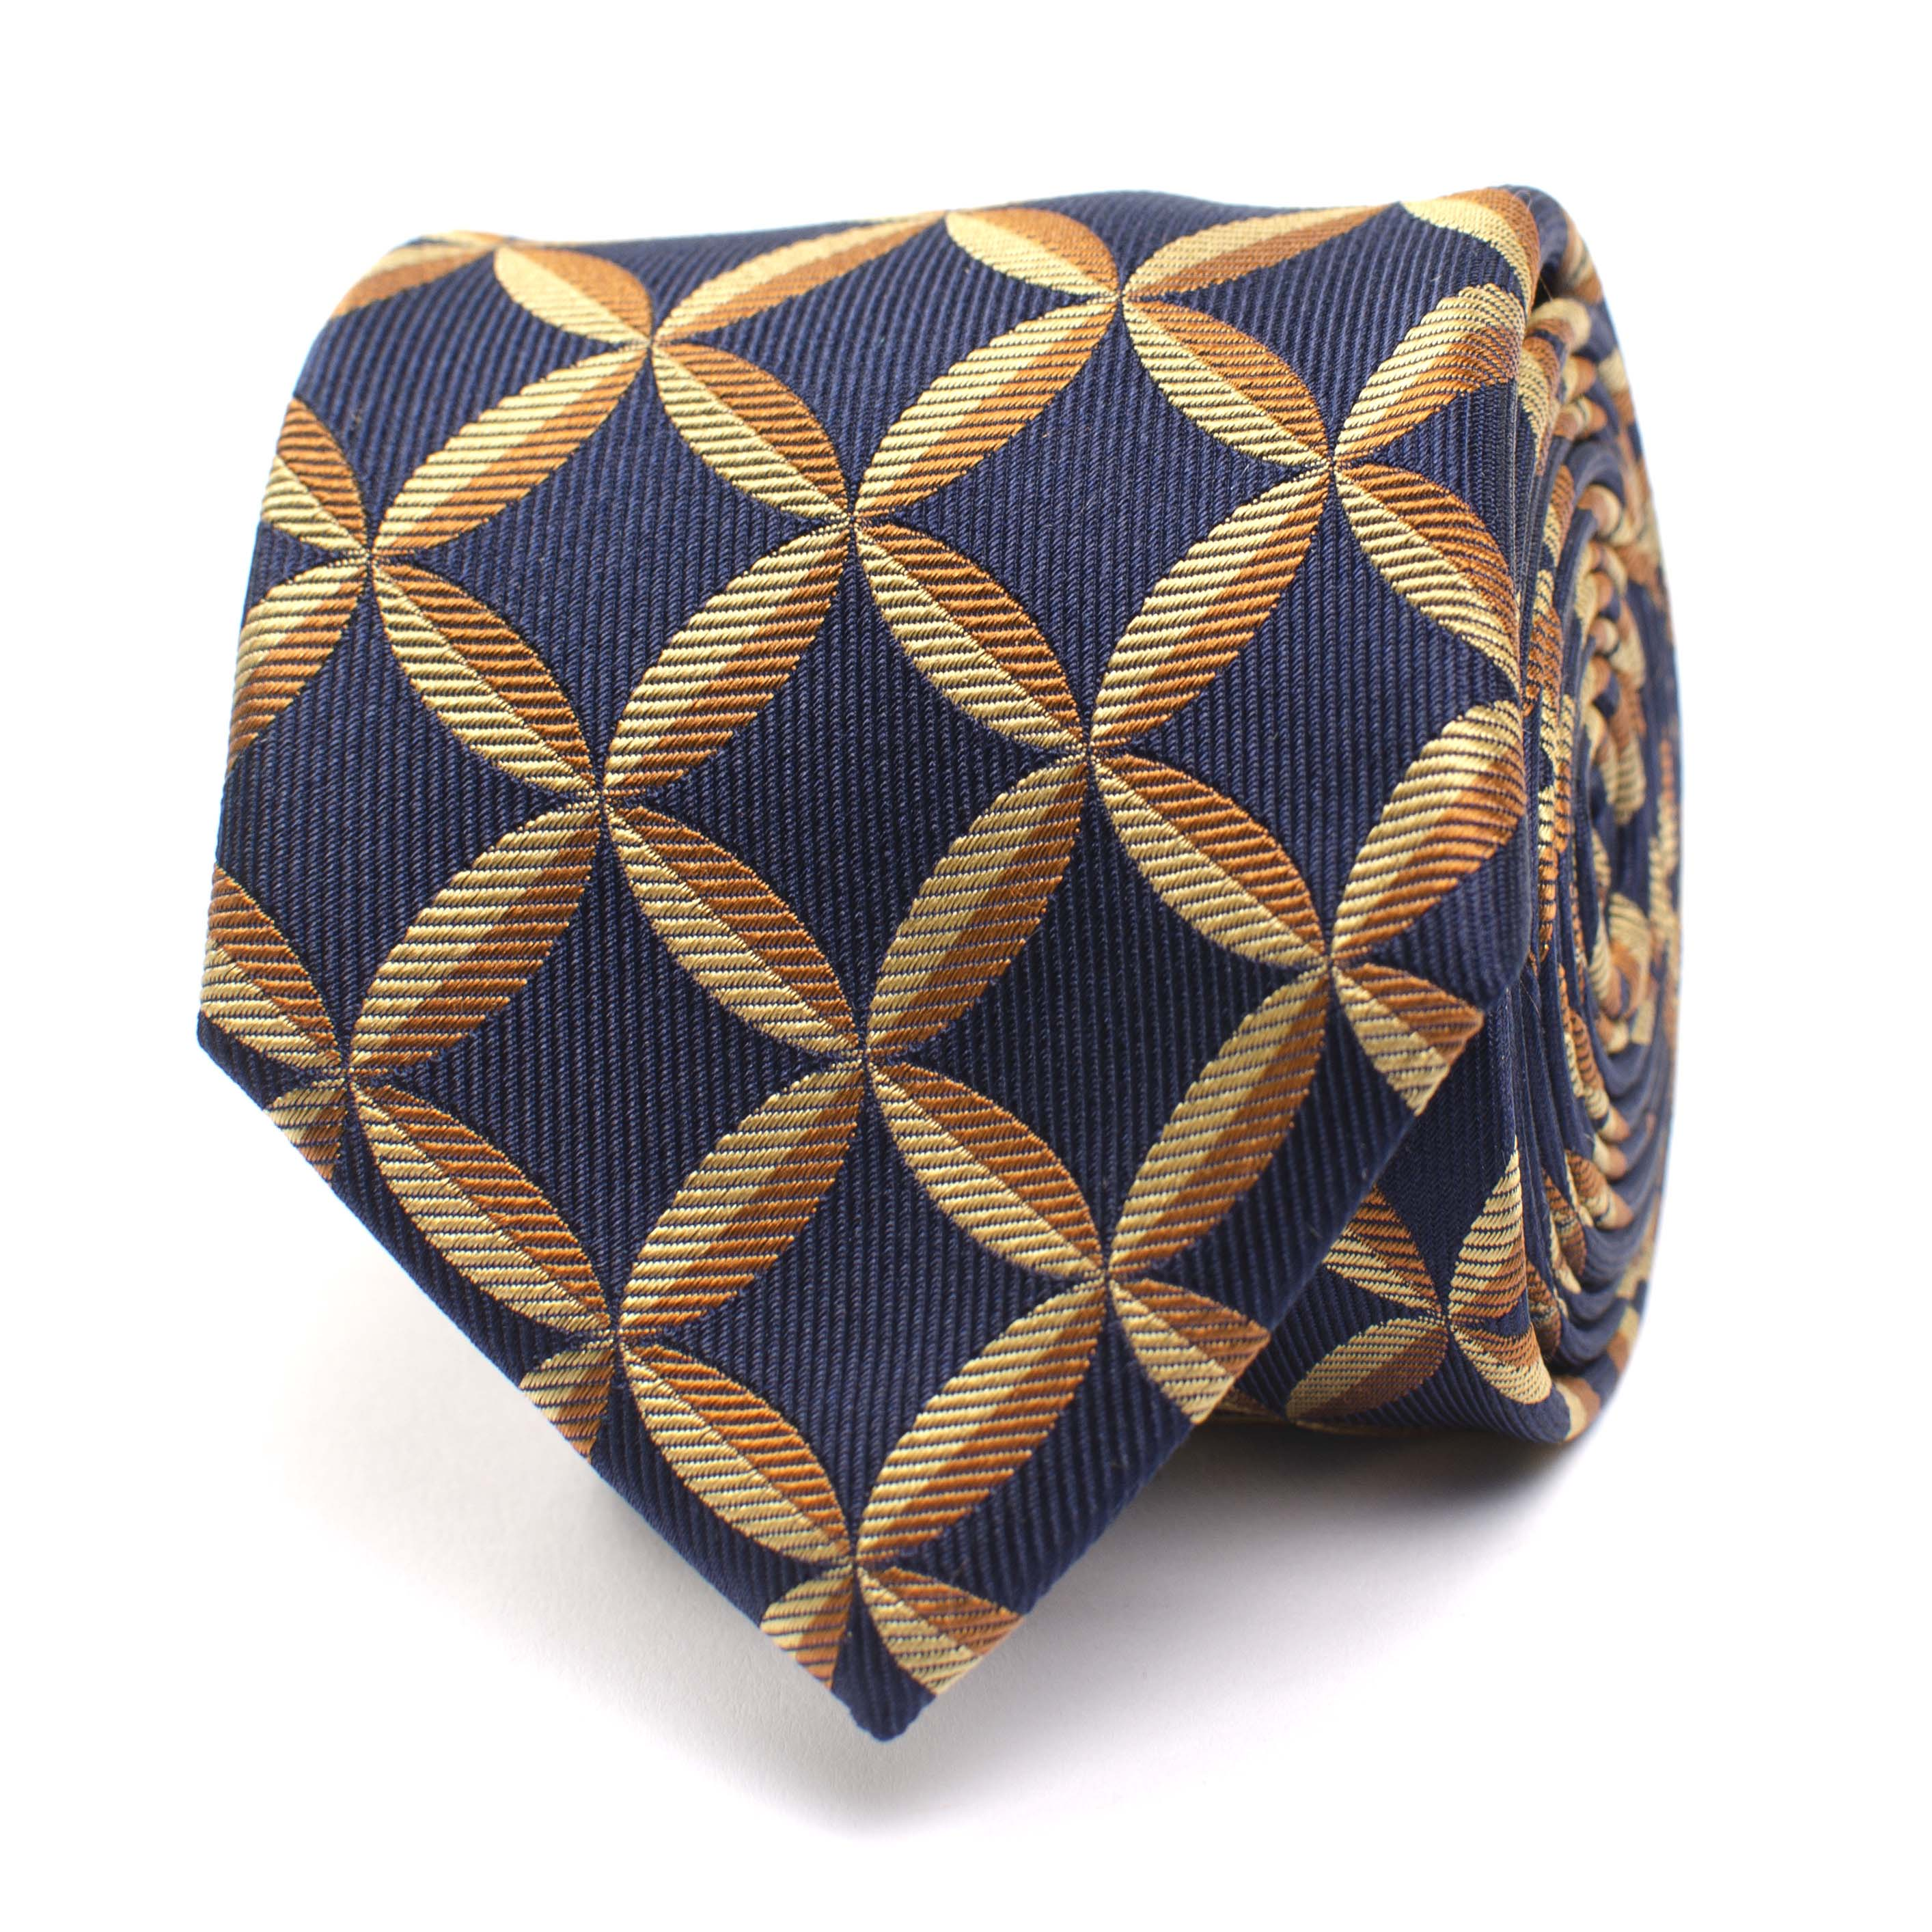 Jaxen | Silk tie with fanstasyprint